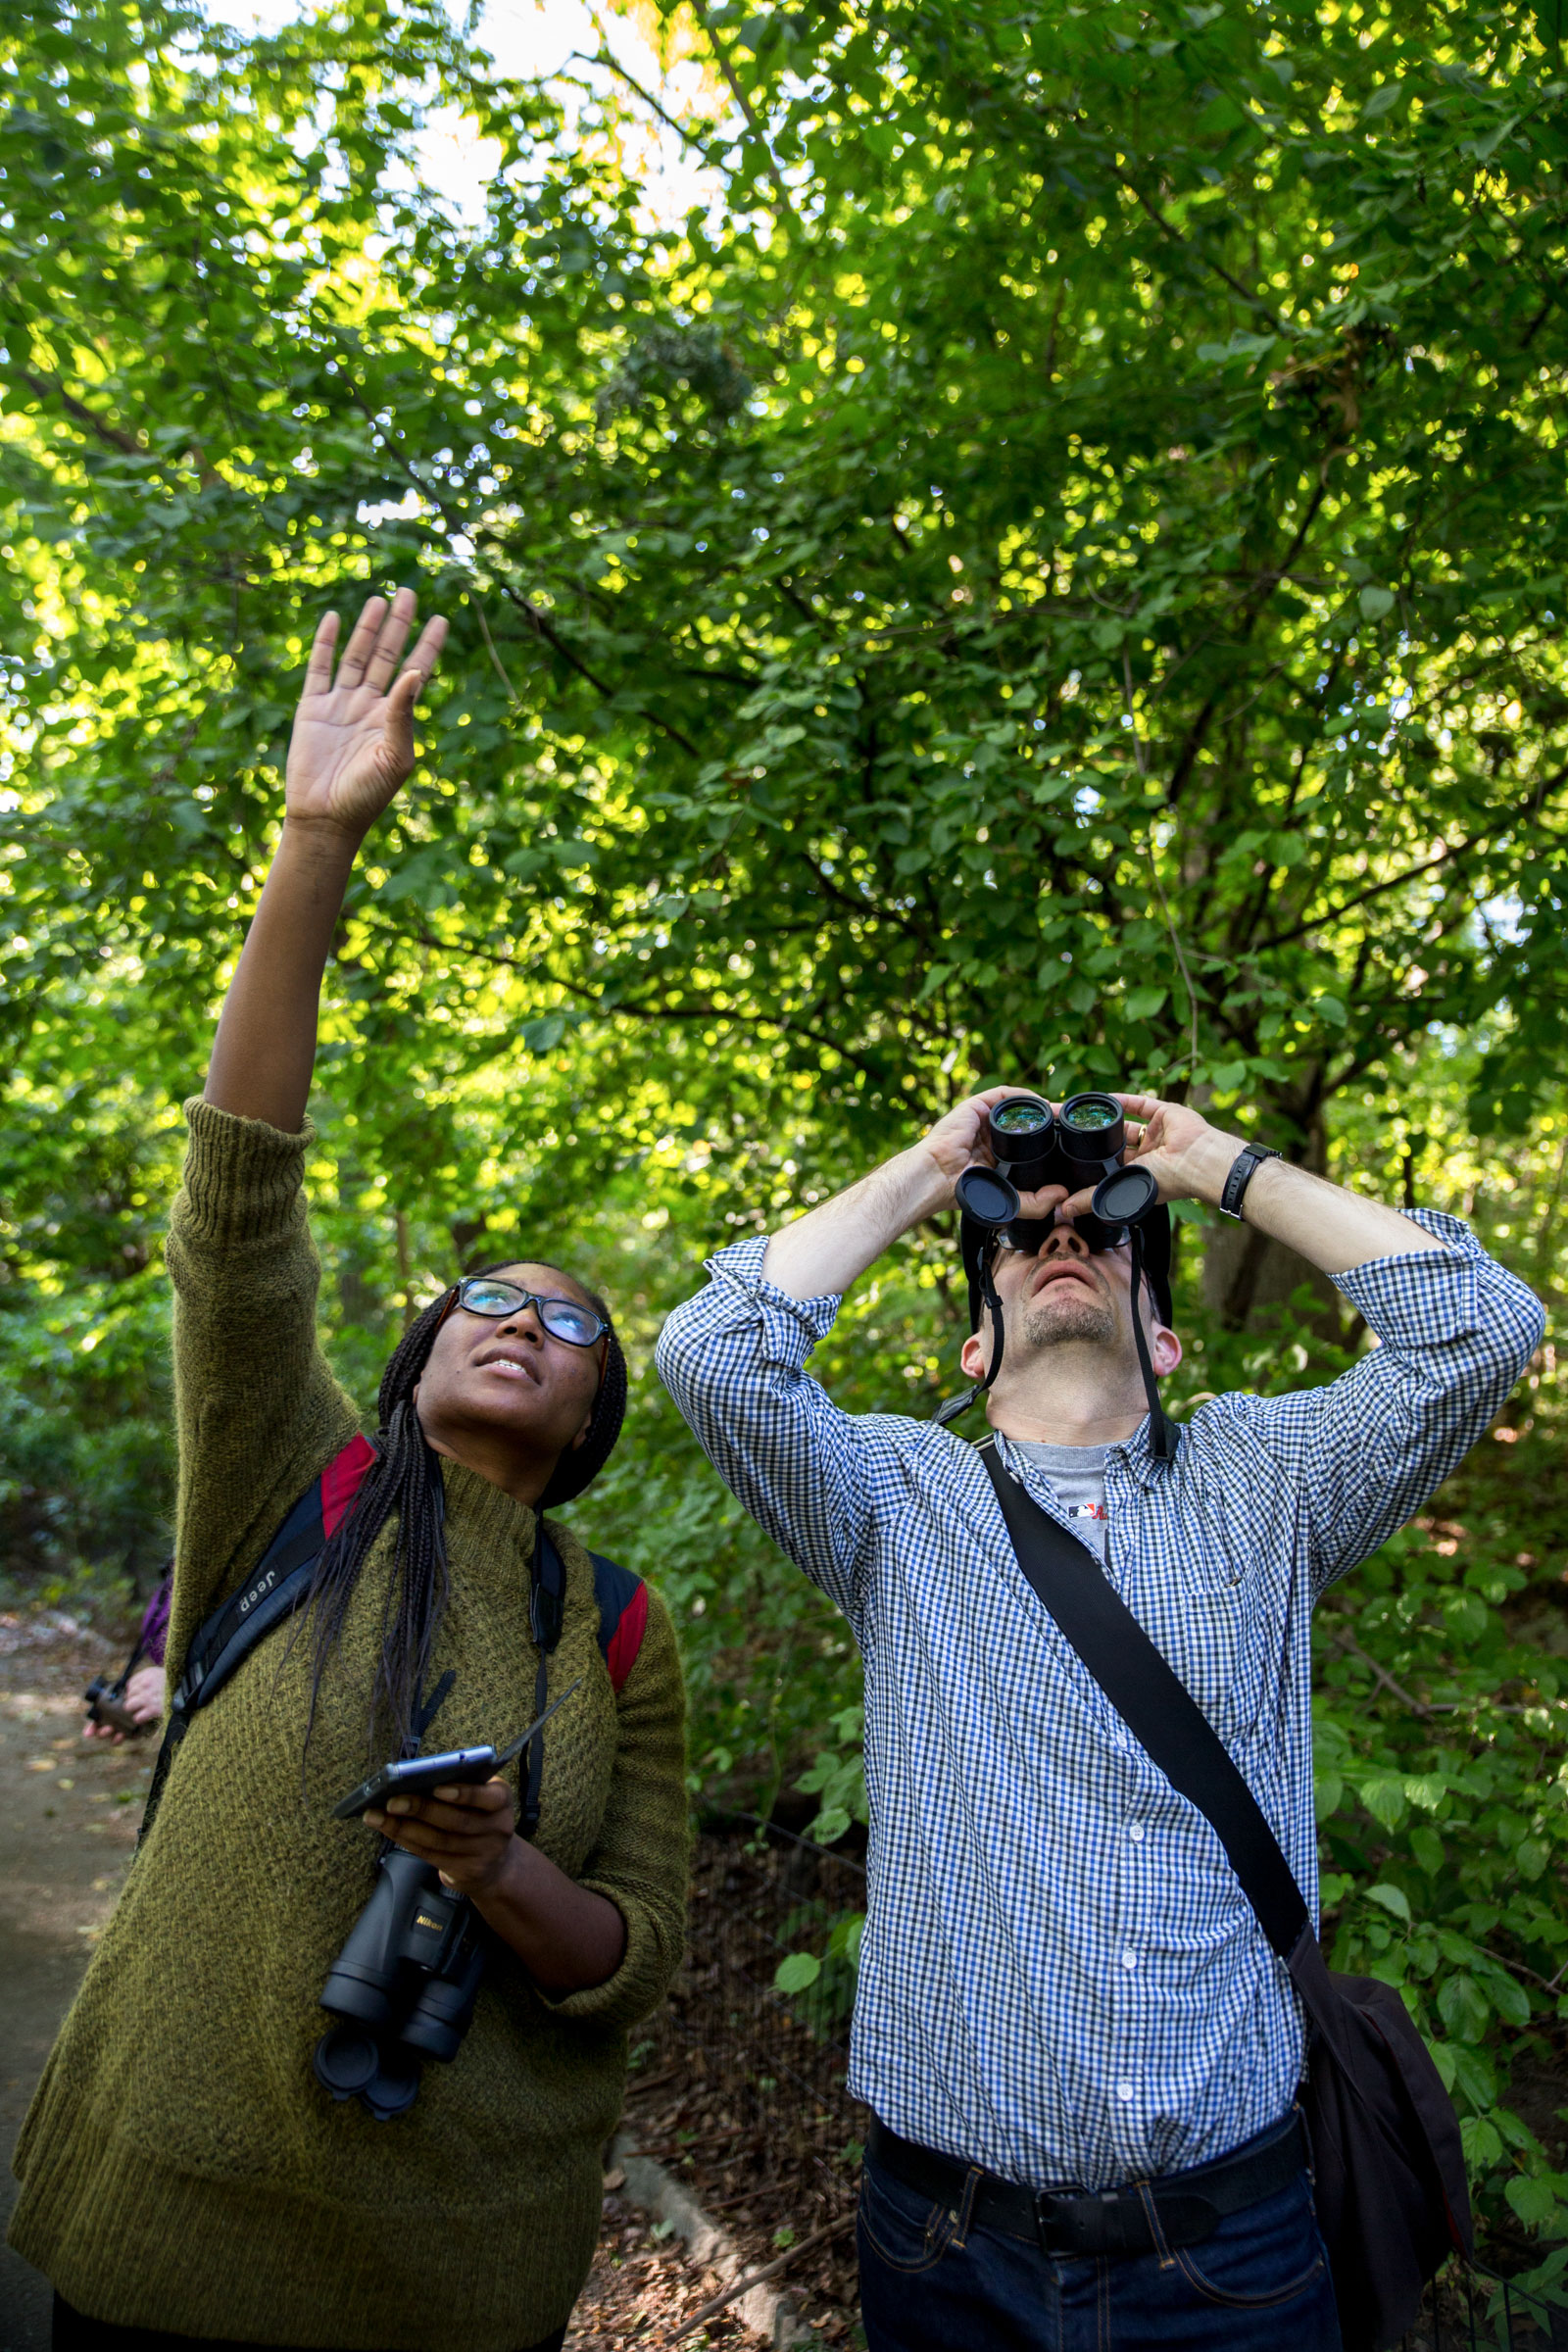 Central Park is often chock-full of birders; you're free to join them in searching for birds, or ignore them entirely. Camilla Cerea/Audubon